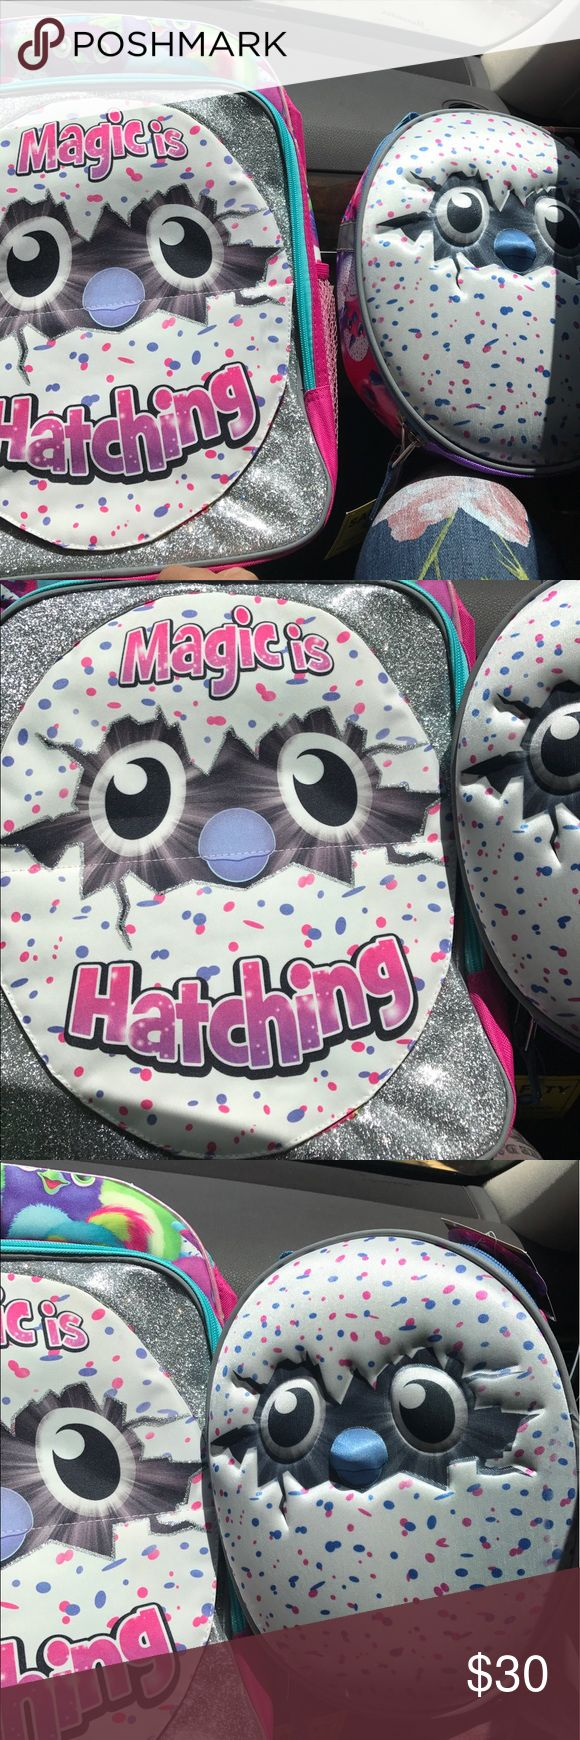 """New hatchimal backpack and lunch kit Brand new, bring book bag 16"""" and lunch kit  super cute Accessories"""